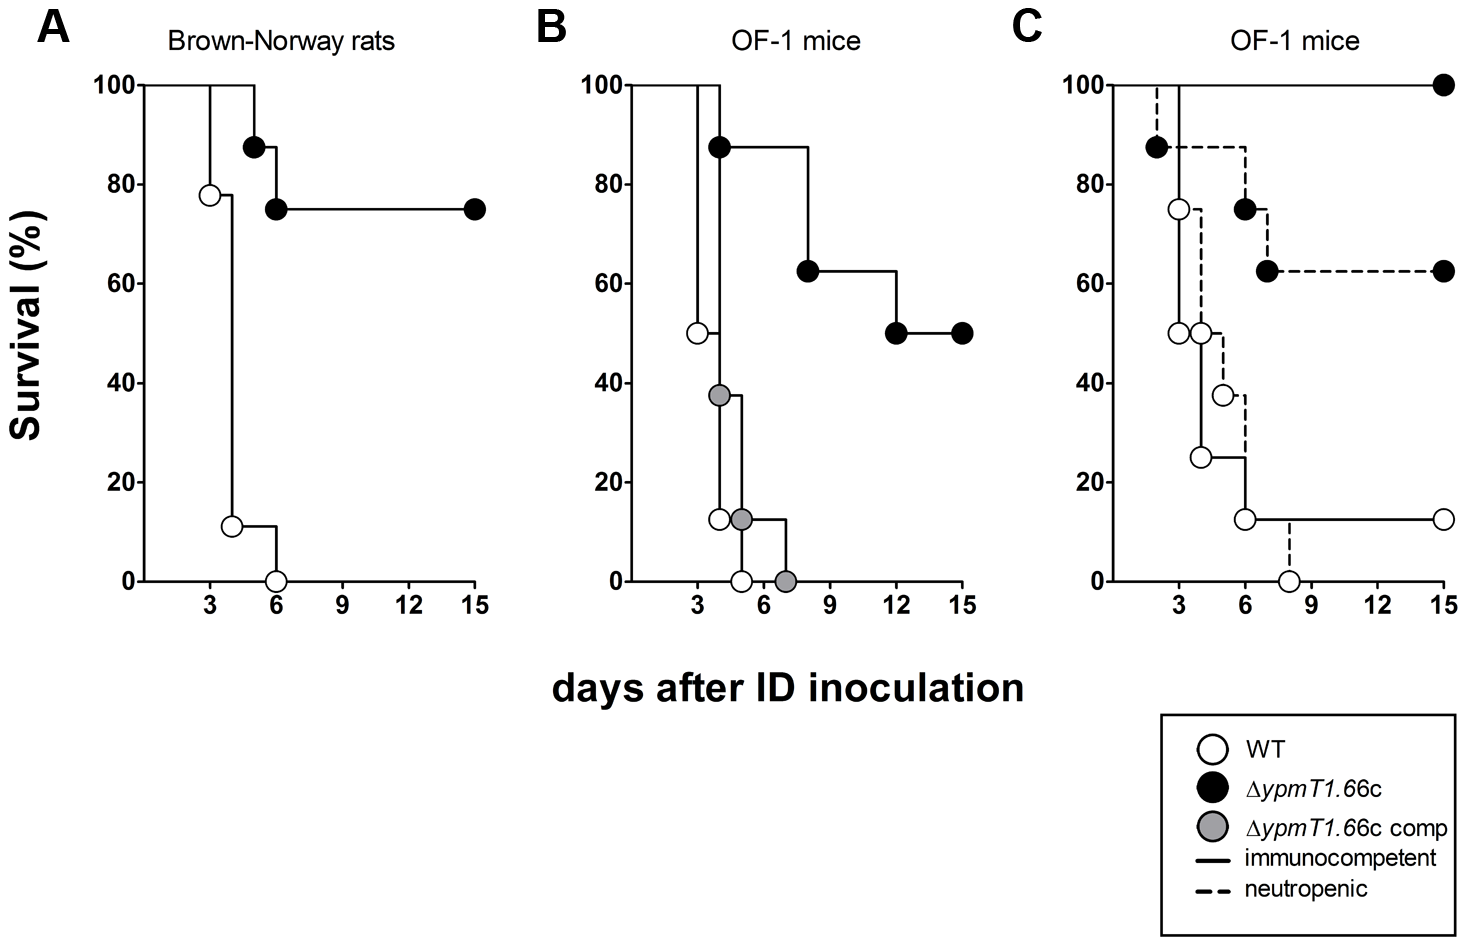 Incidence of plague in immunocompetent rats (A), immunocompetent mice (B), and neutropenic mice (C) injected intradermally with ∼20 WT <i>Y. pestis</i> (white circles), Δ<i>ypmt1.66c</i> (black circles) or complemented mutant (grey circles).